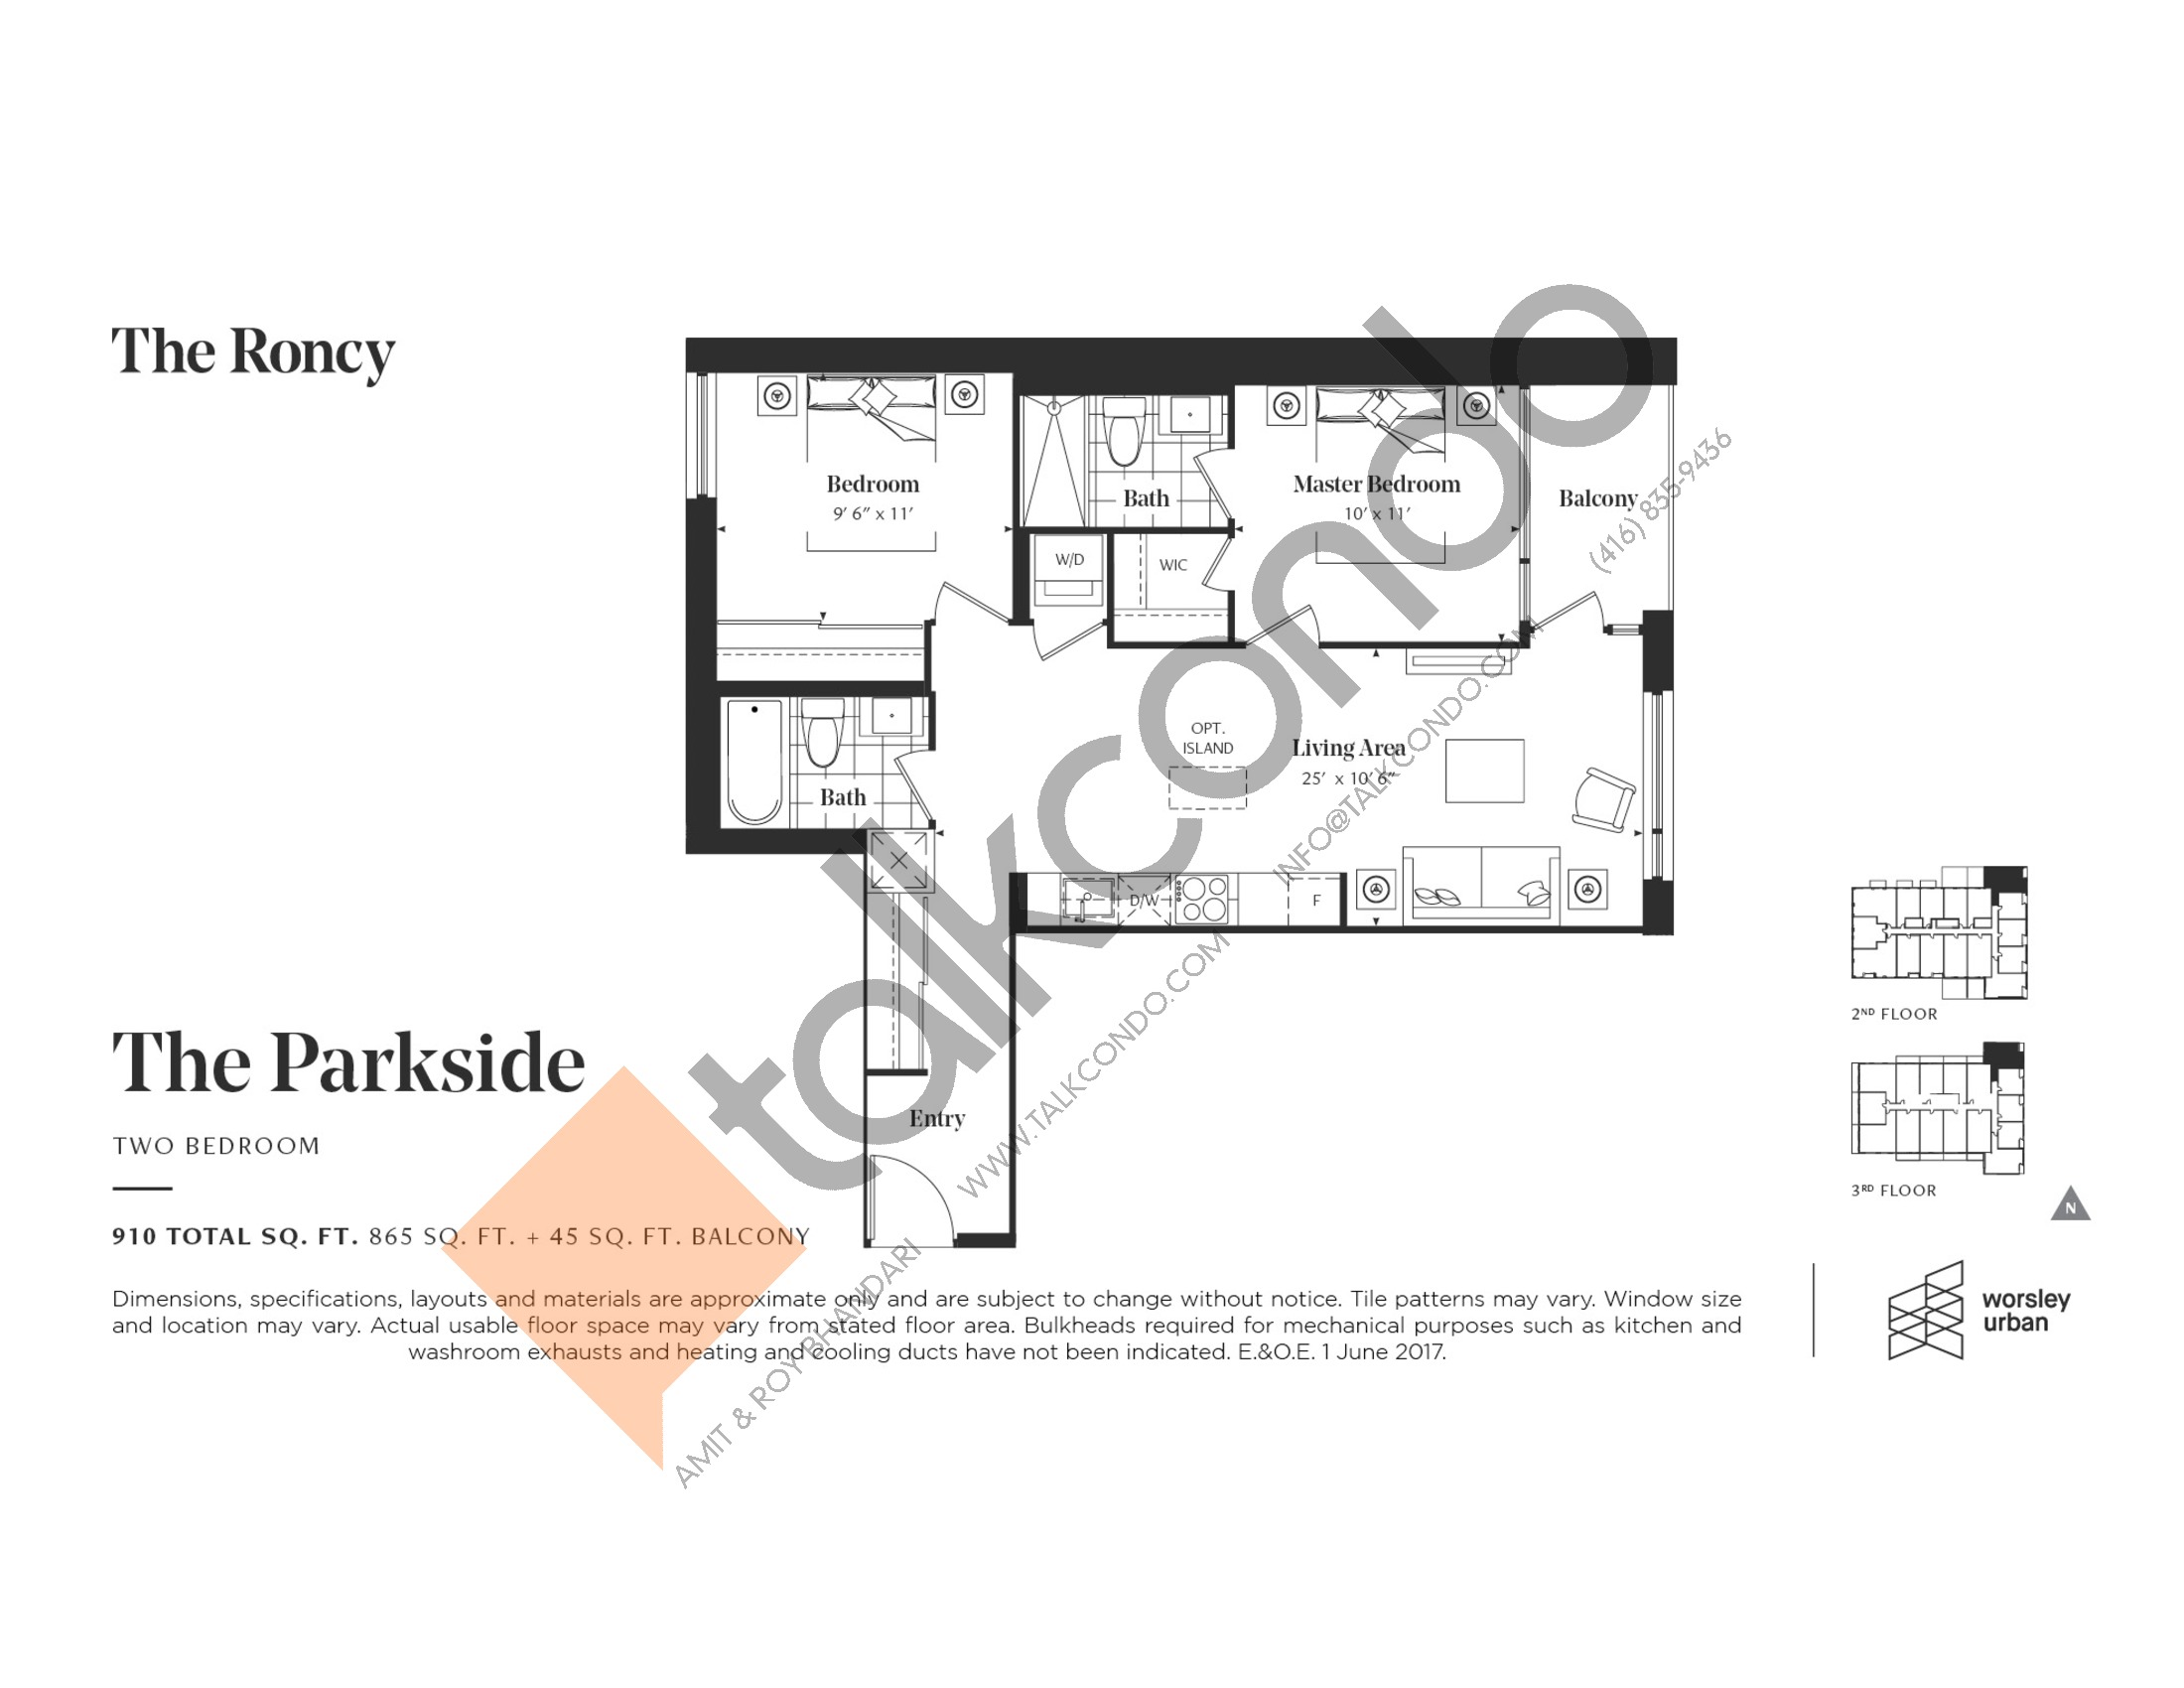 The Parkside Floor Plan at The Roncy Condos - 865 sq.ft